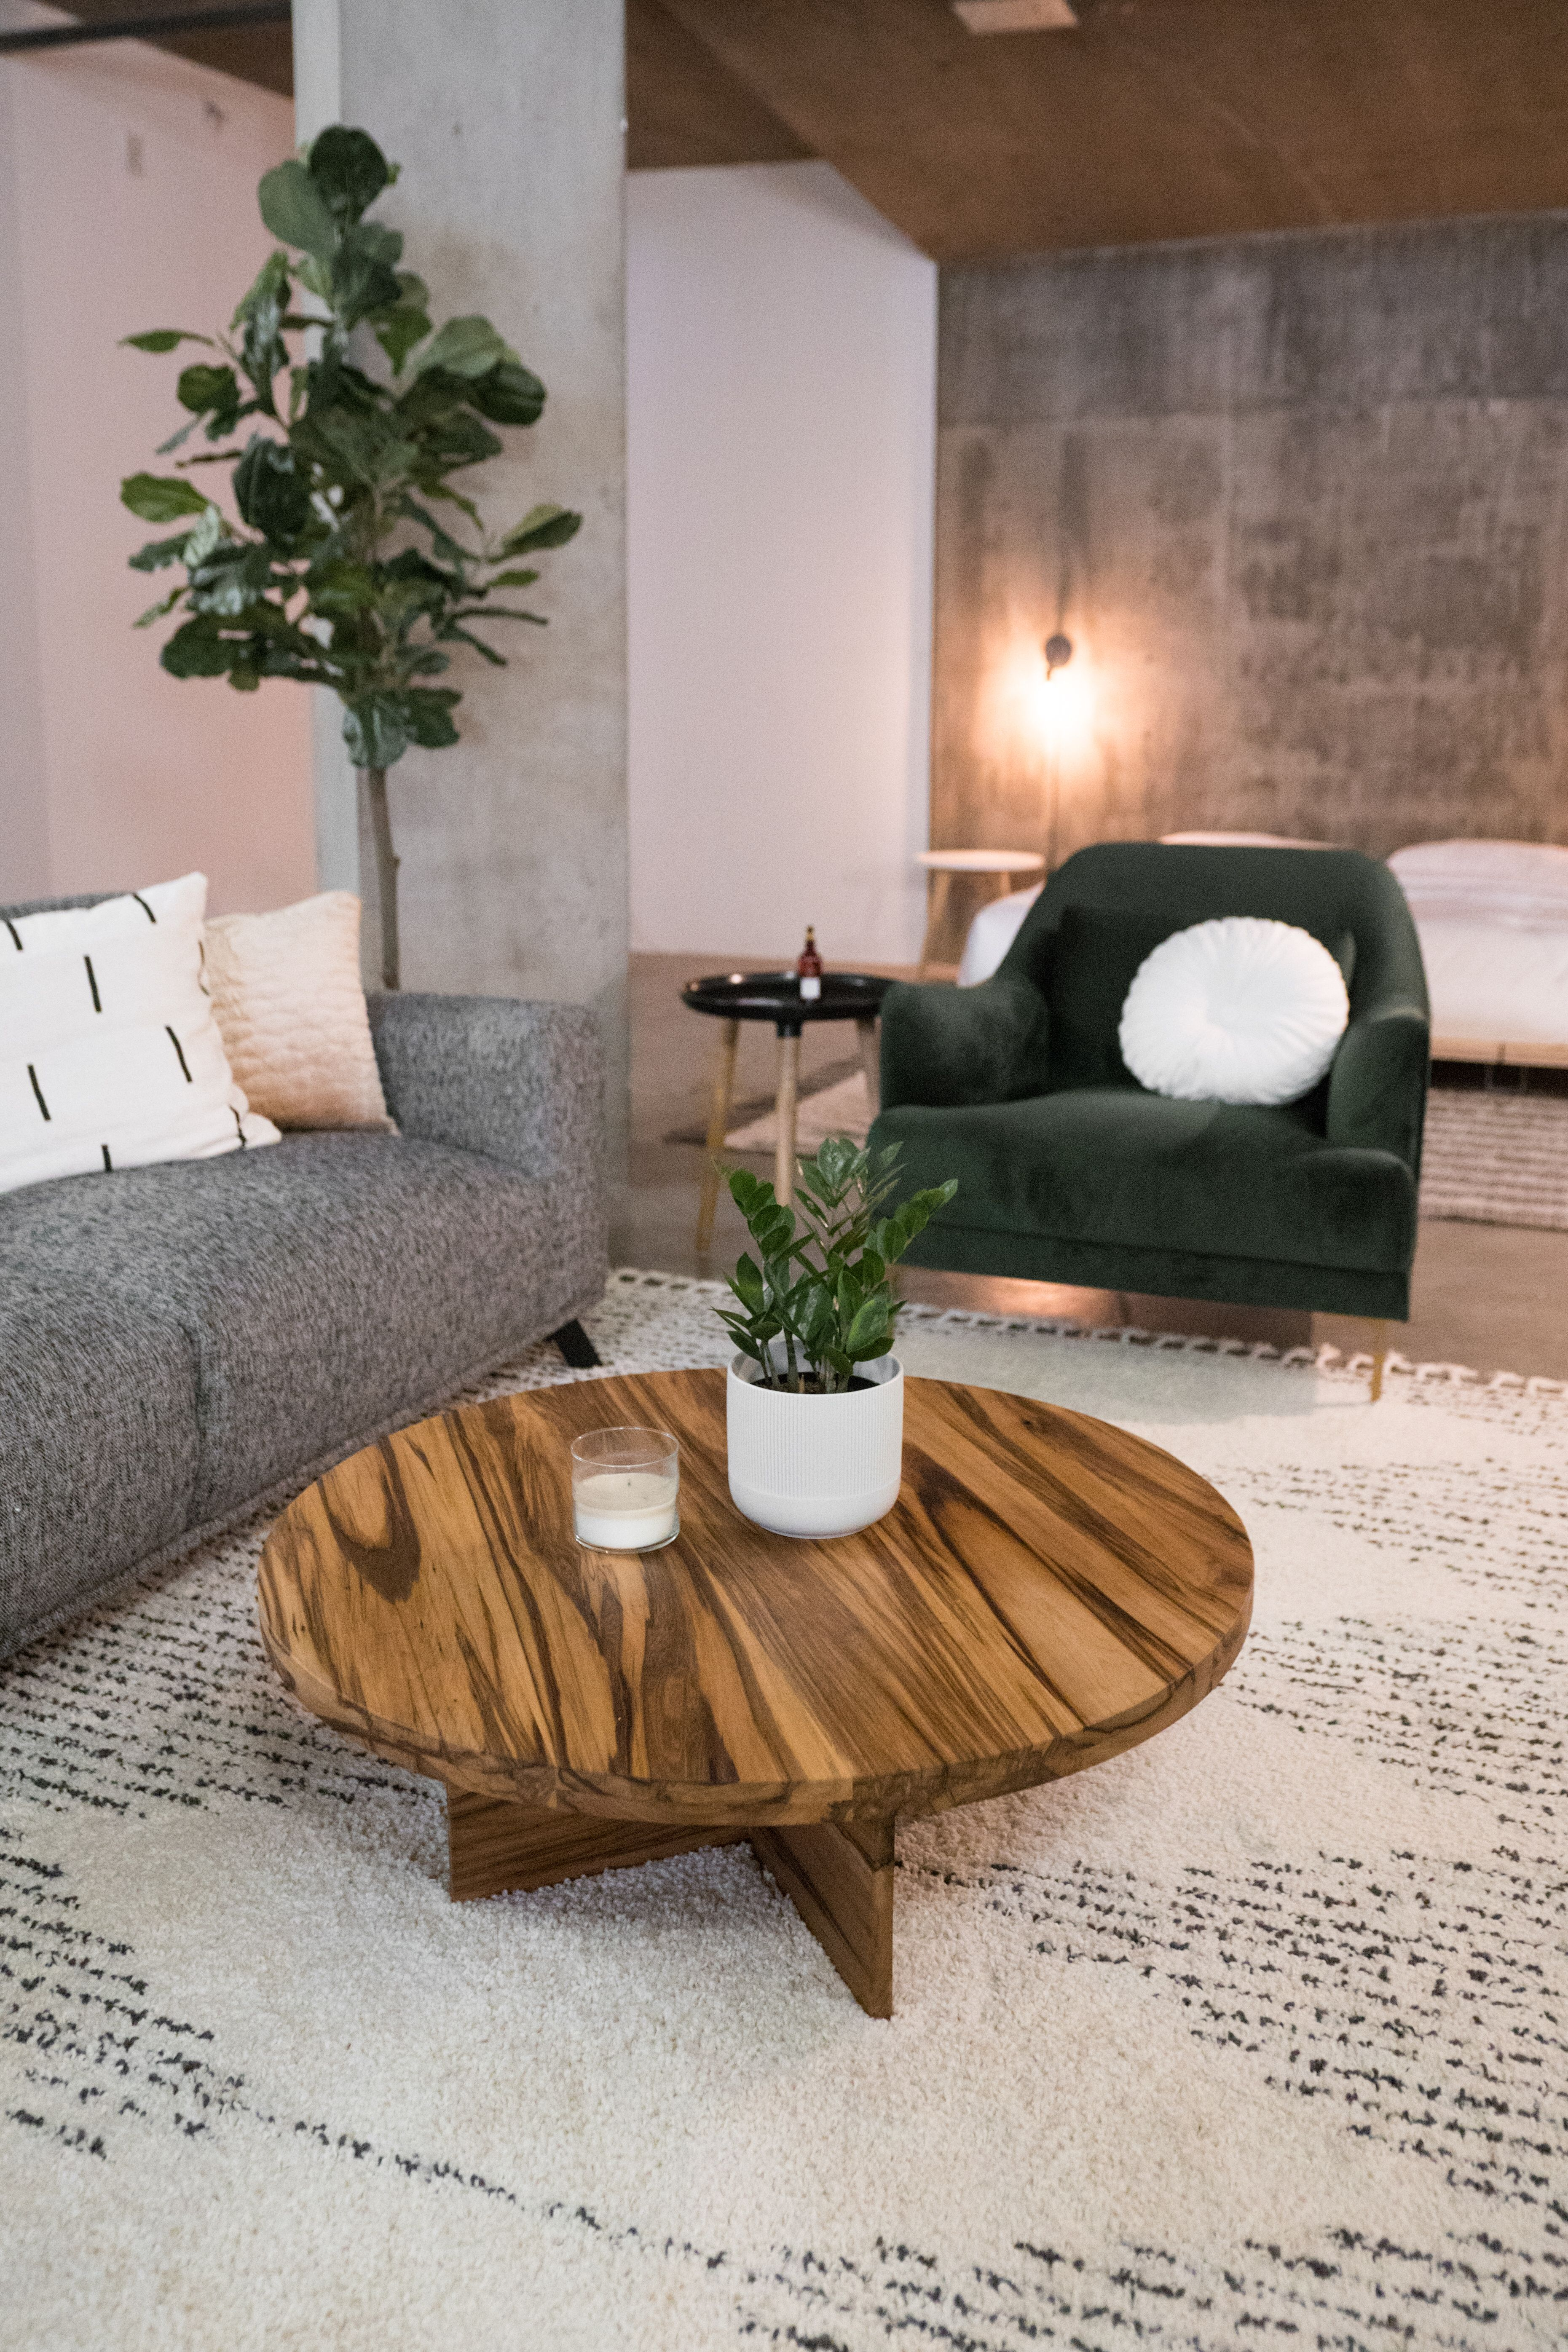 The Horizon Round Coffee Table In A Modern Industrial Loft With